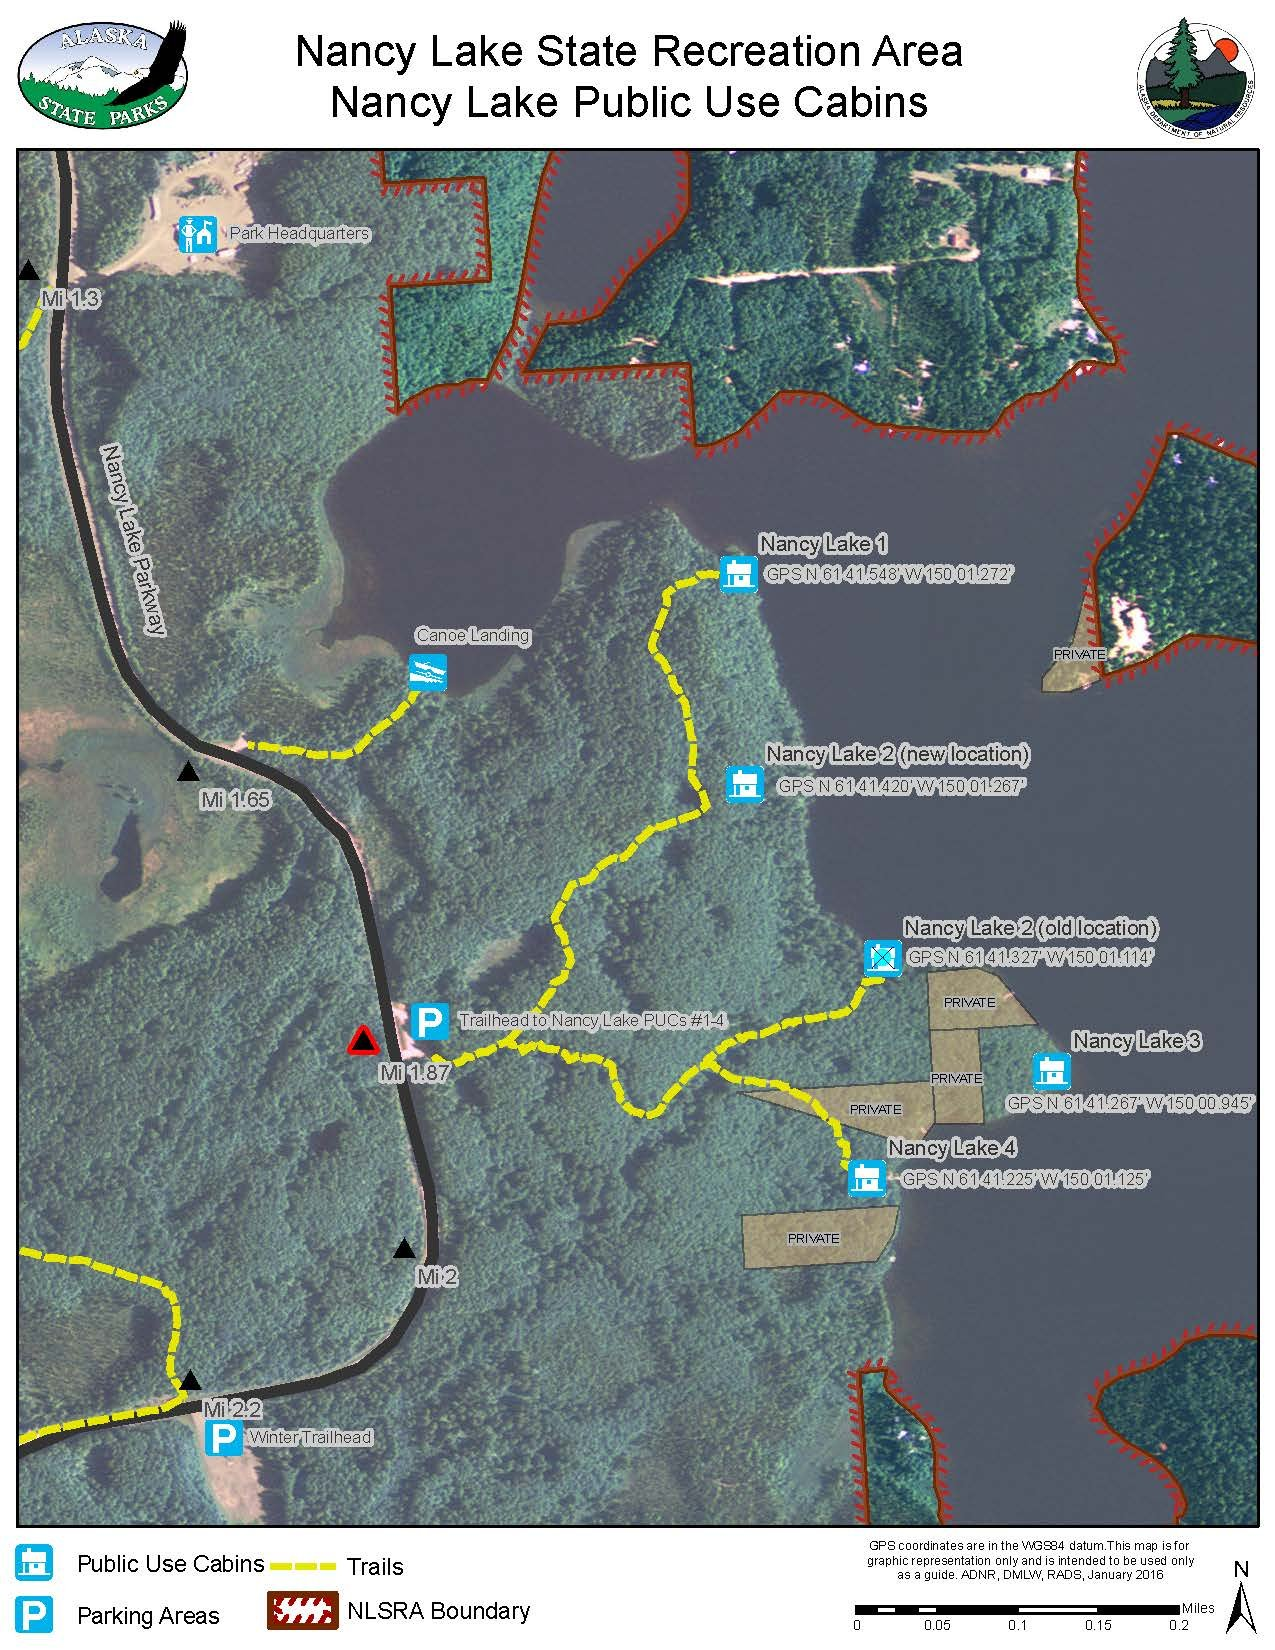 Nancy Lake State Recreation Area Public Use Cabin Map